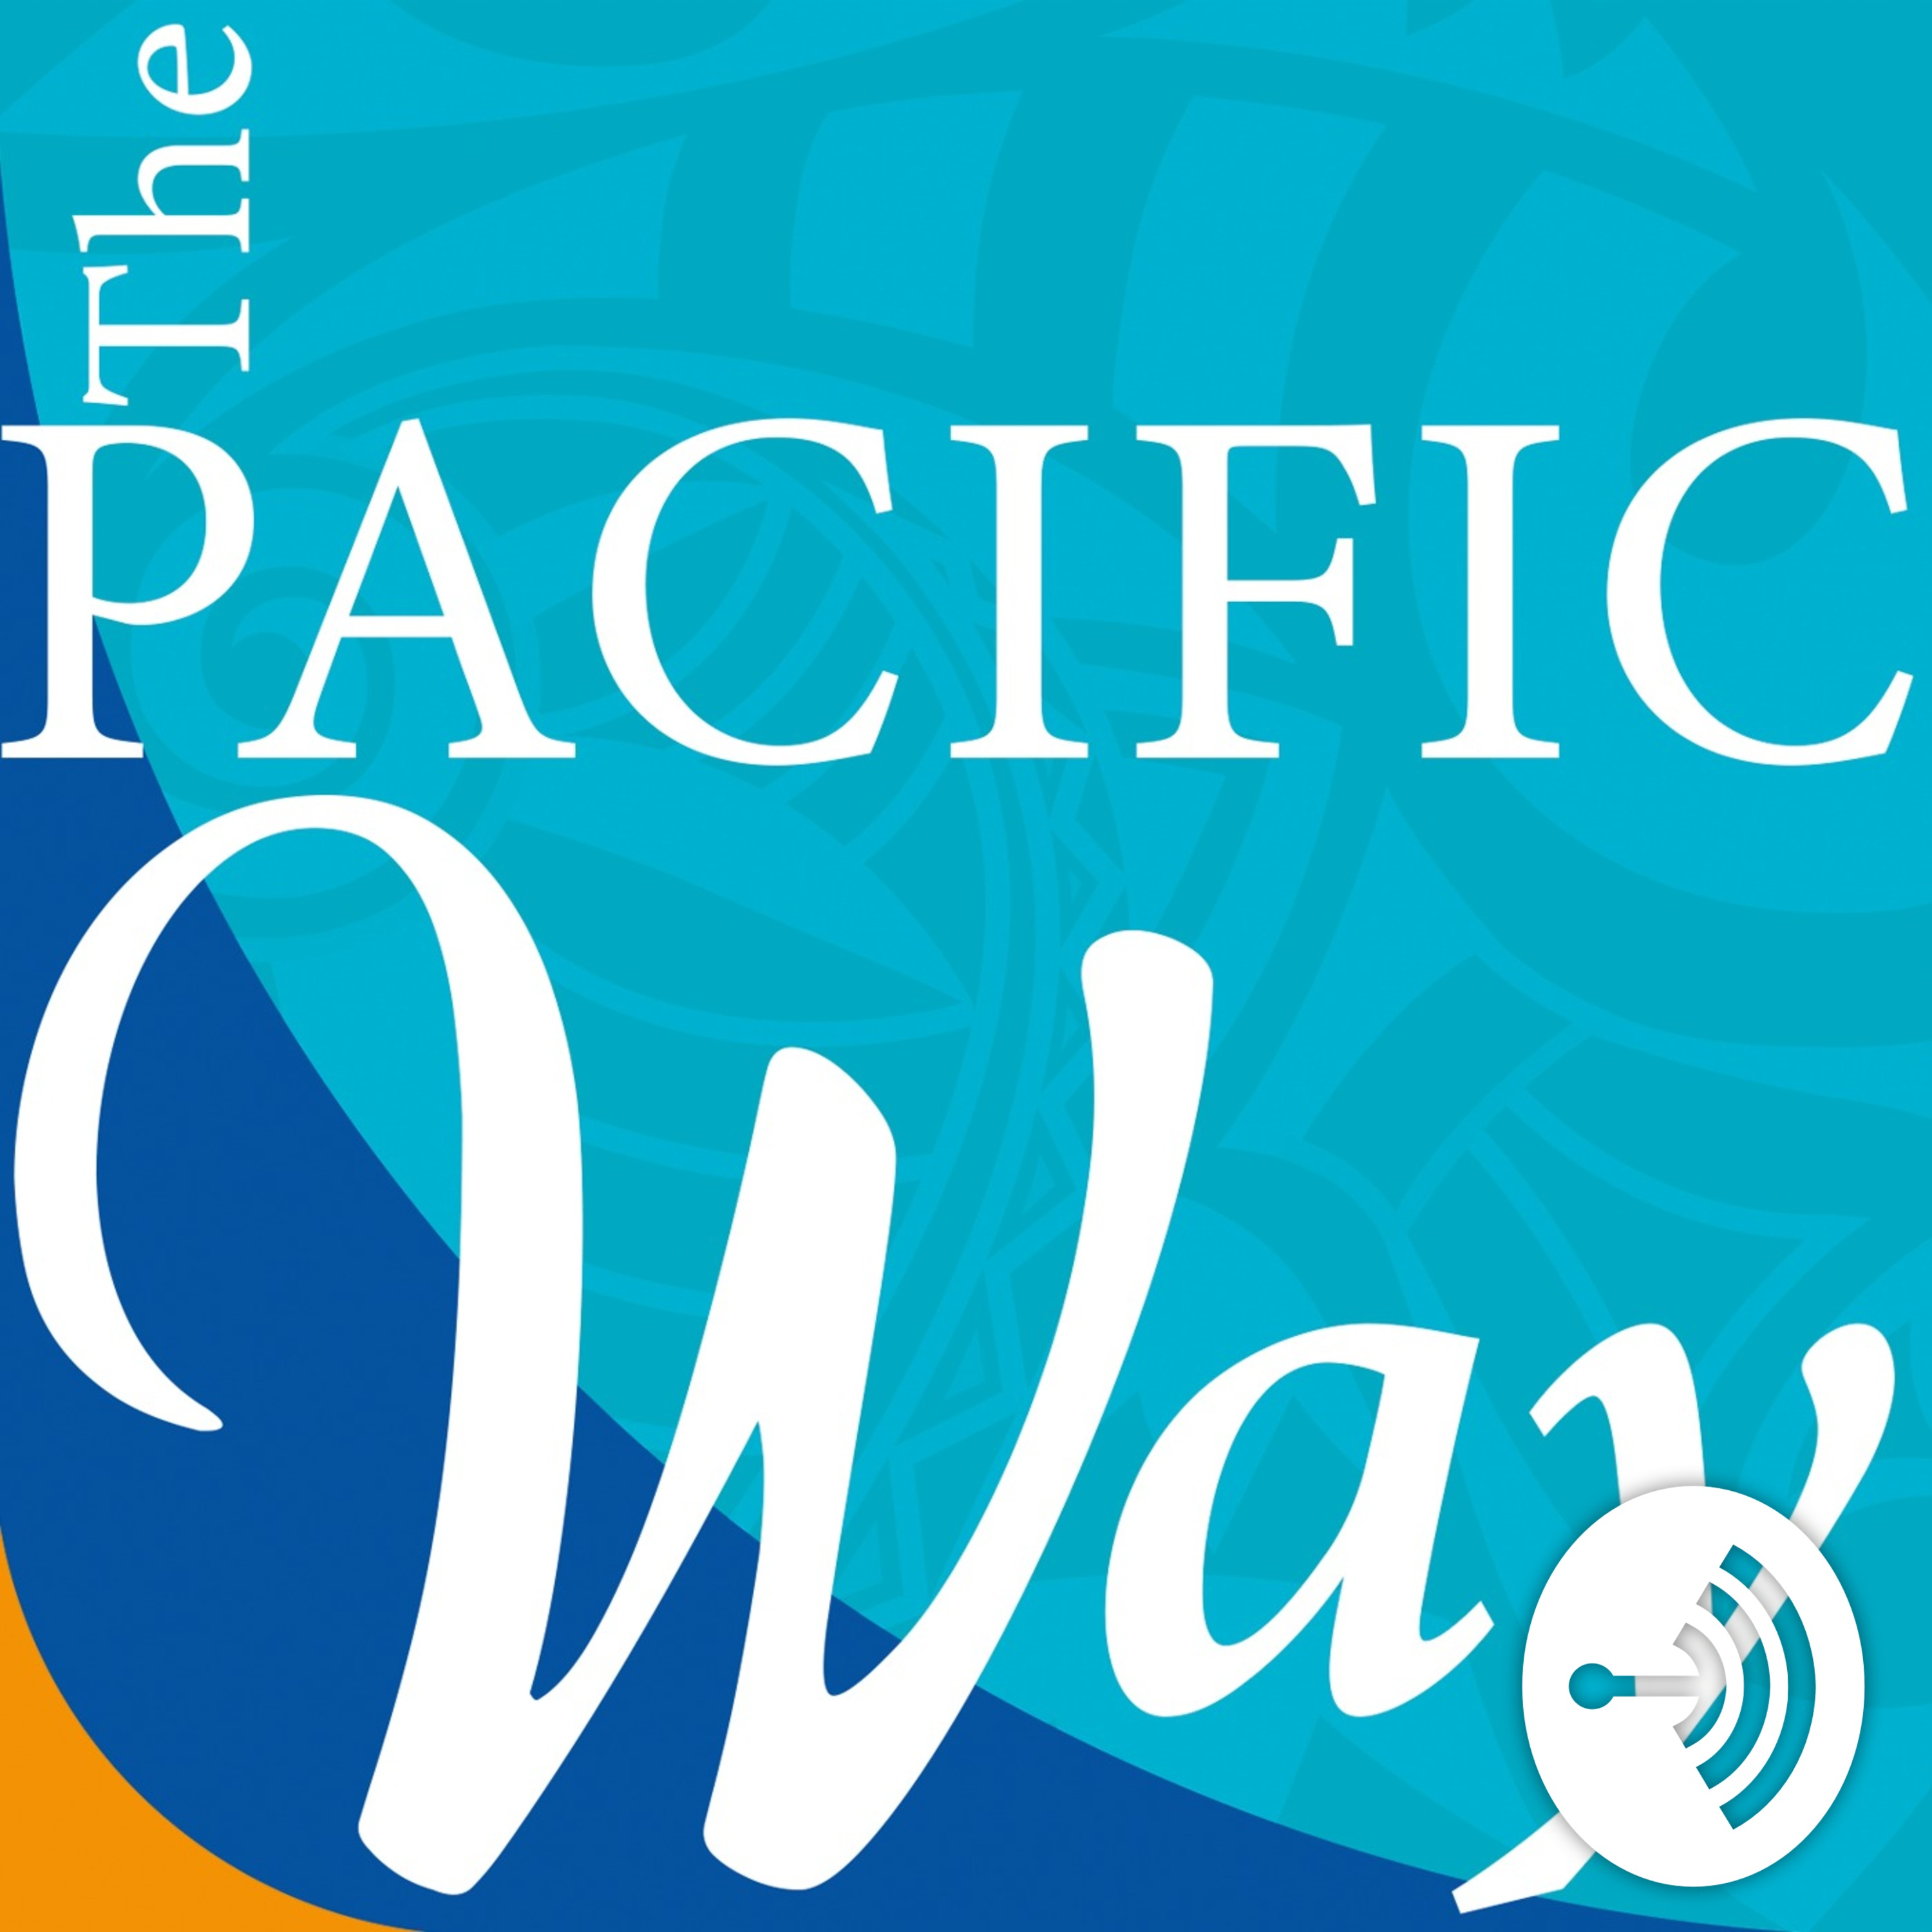 CRGA 49 and 11th Conference- A sustainable future for the Blue Pacific